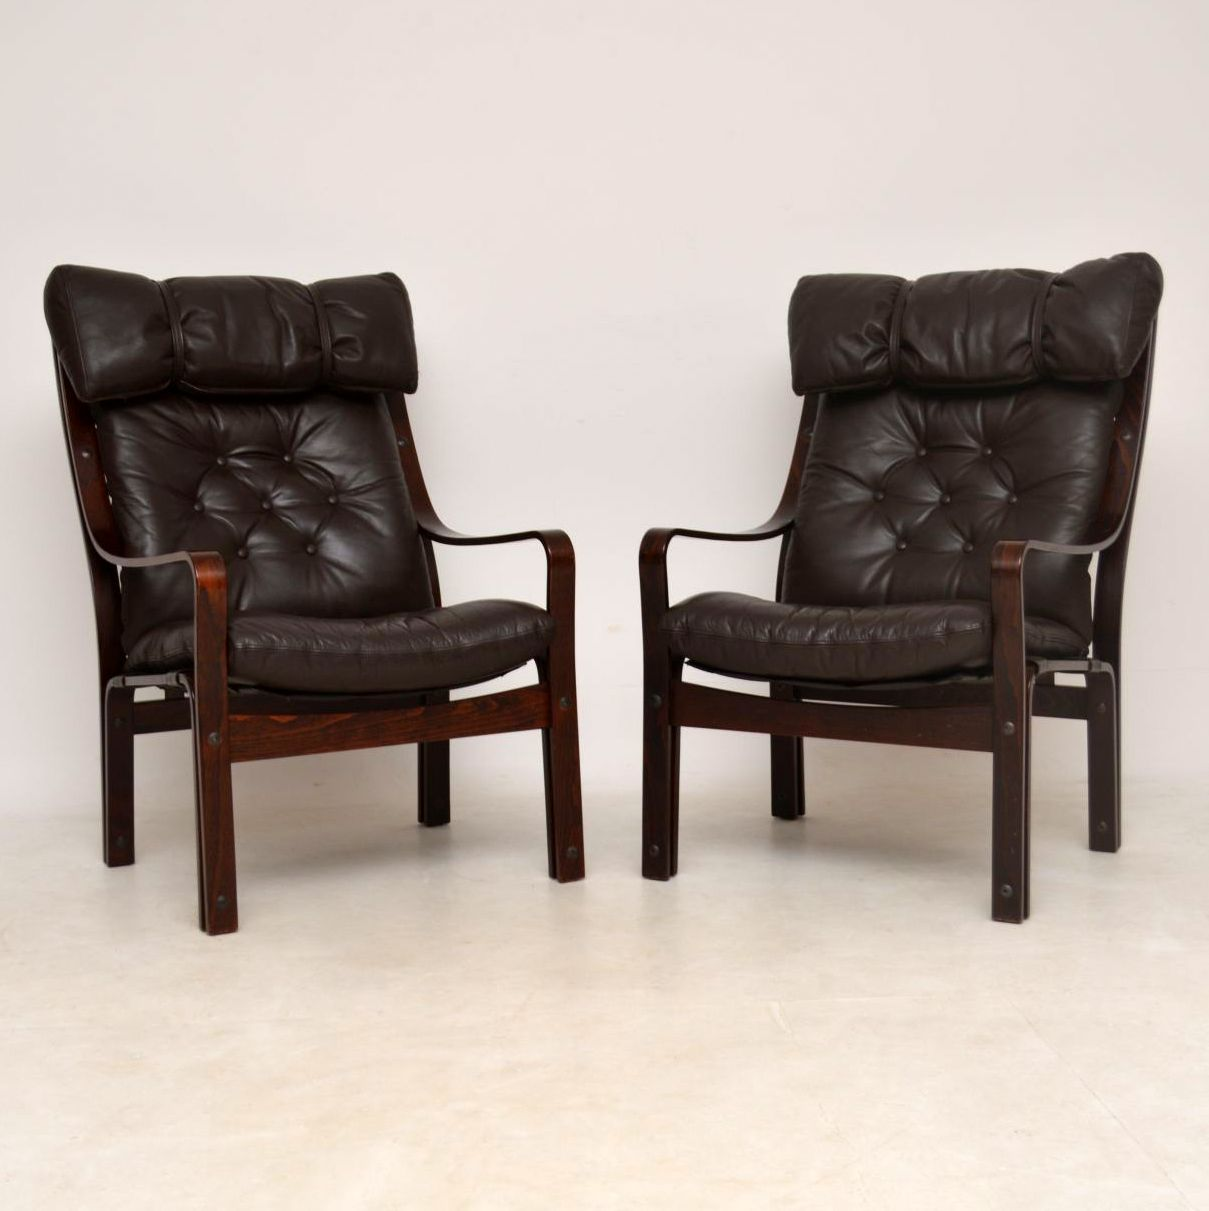 1970's Pair of Vintage Danish Leather Armchairs ...